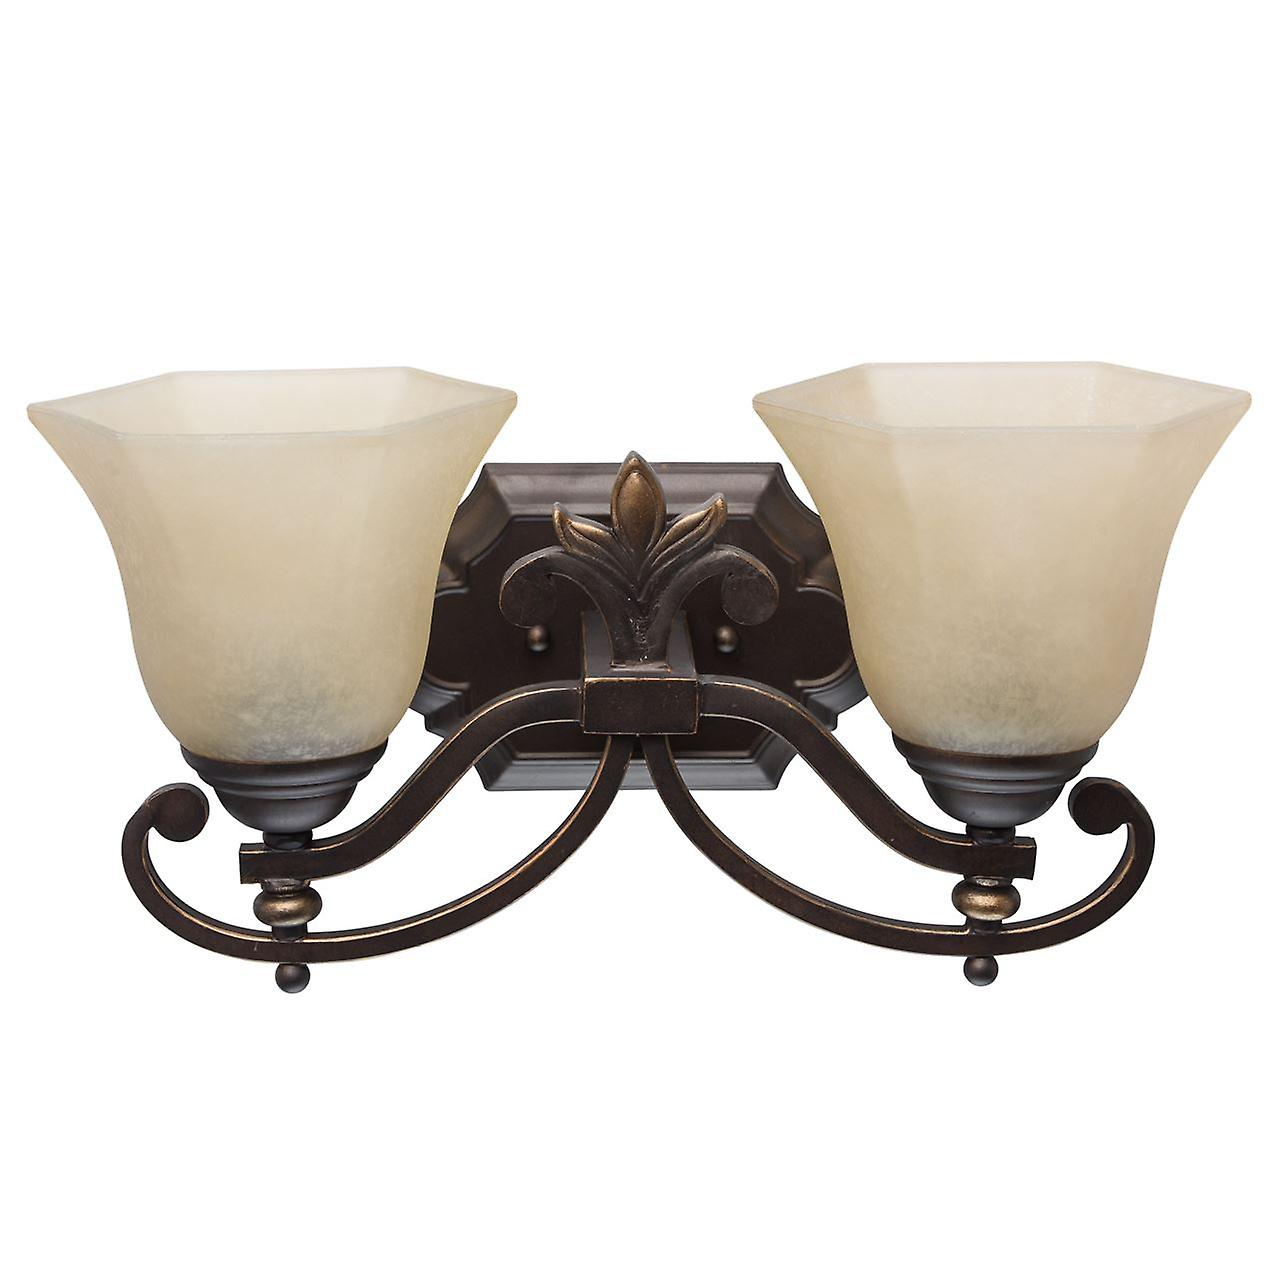 Glasberg  -  marron Two Light Wall Lamp With Glass Shades  382021302